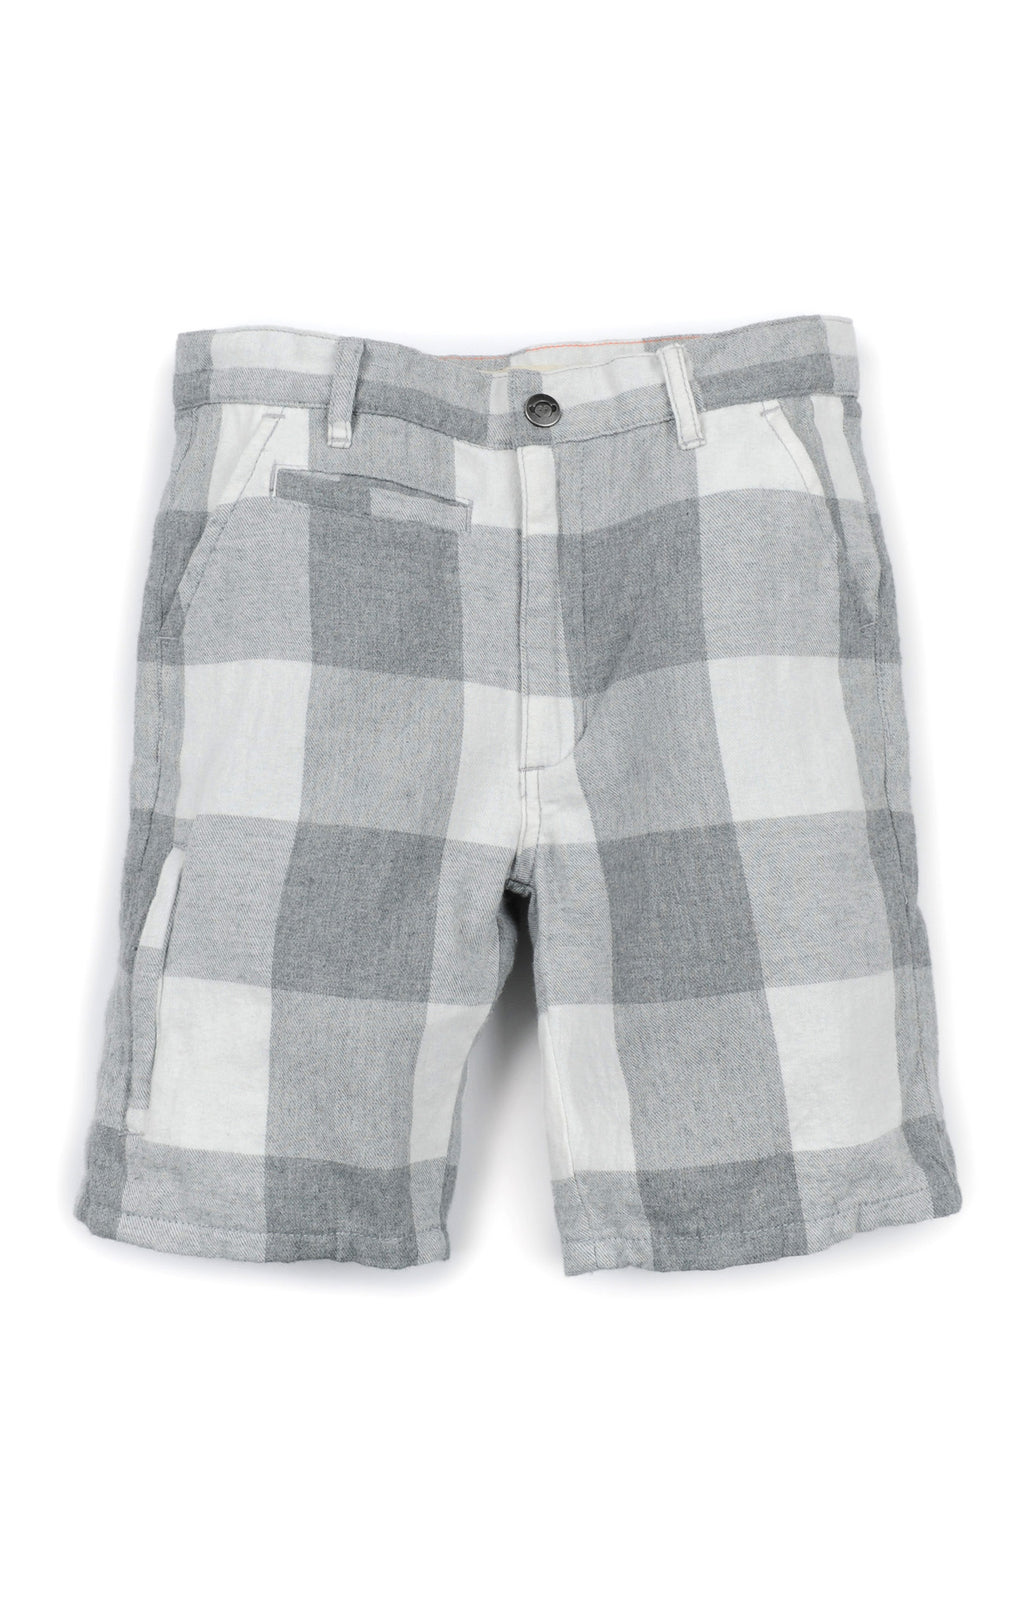 Appaman Coastal Shorts - Fog Check